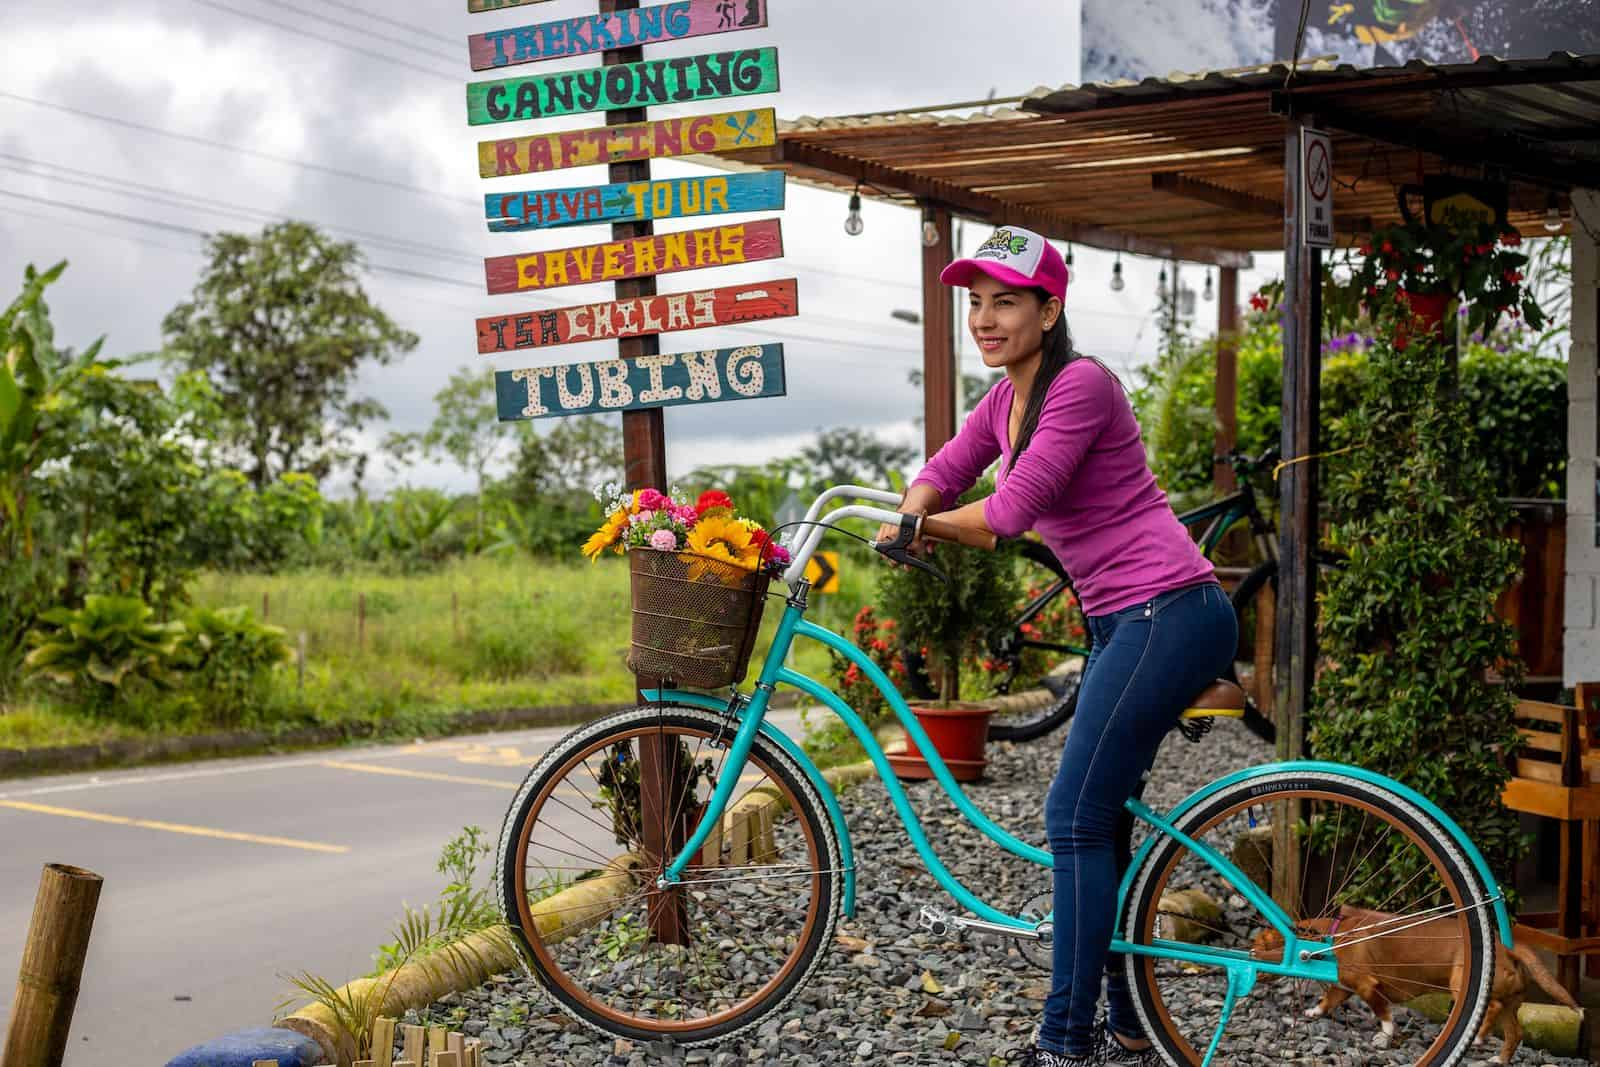 "A woman in a pink shirt, jeans and a baseball cap sits on a turquoise bike on a roadside, with a sign behind her that reads, ""Trekking, Canyoning, Rafting, Tubing,"" etc."